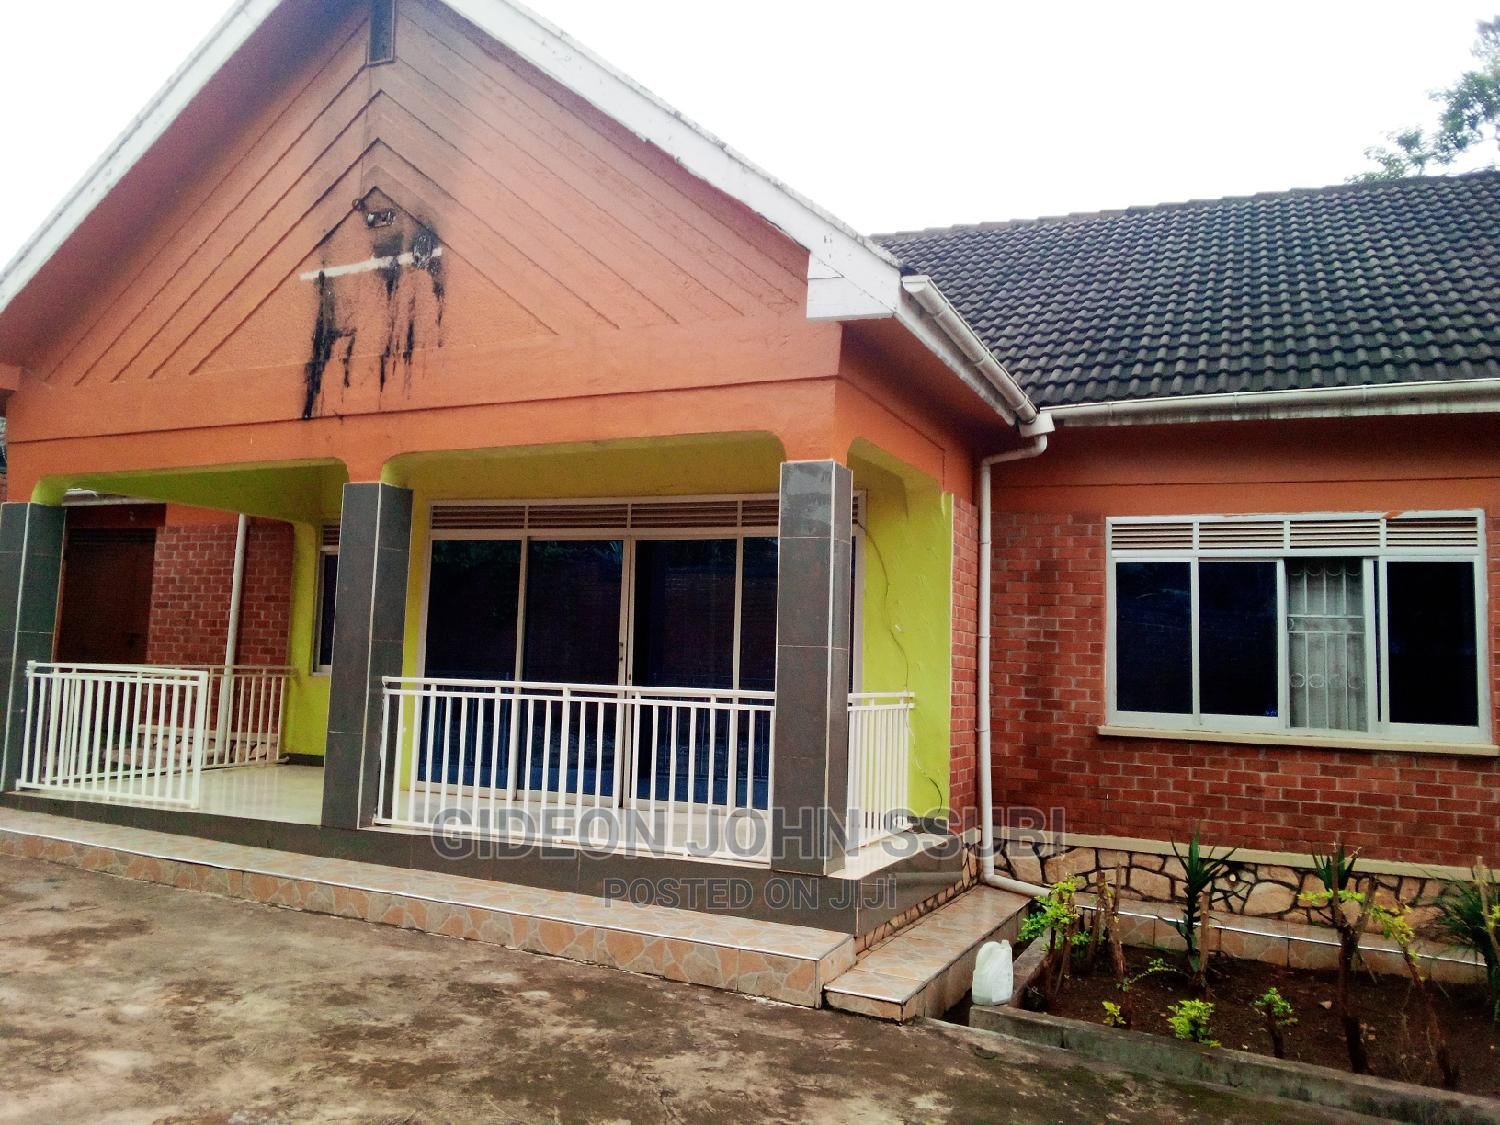 3 Bedrooms House At Muyenga Zone 4 For Sale | Houses & Apartments For Sale for sale in Kampala, Central Region, Uganda